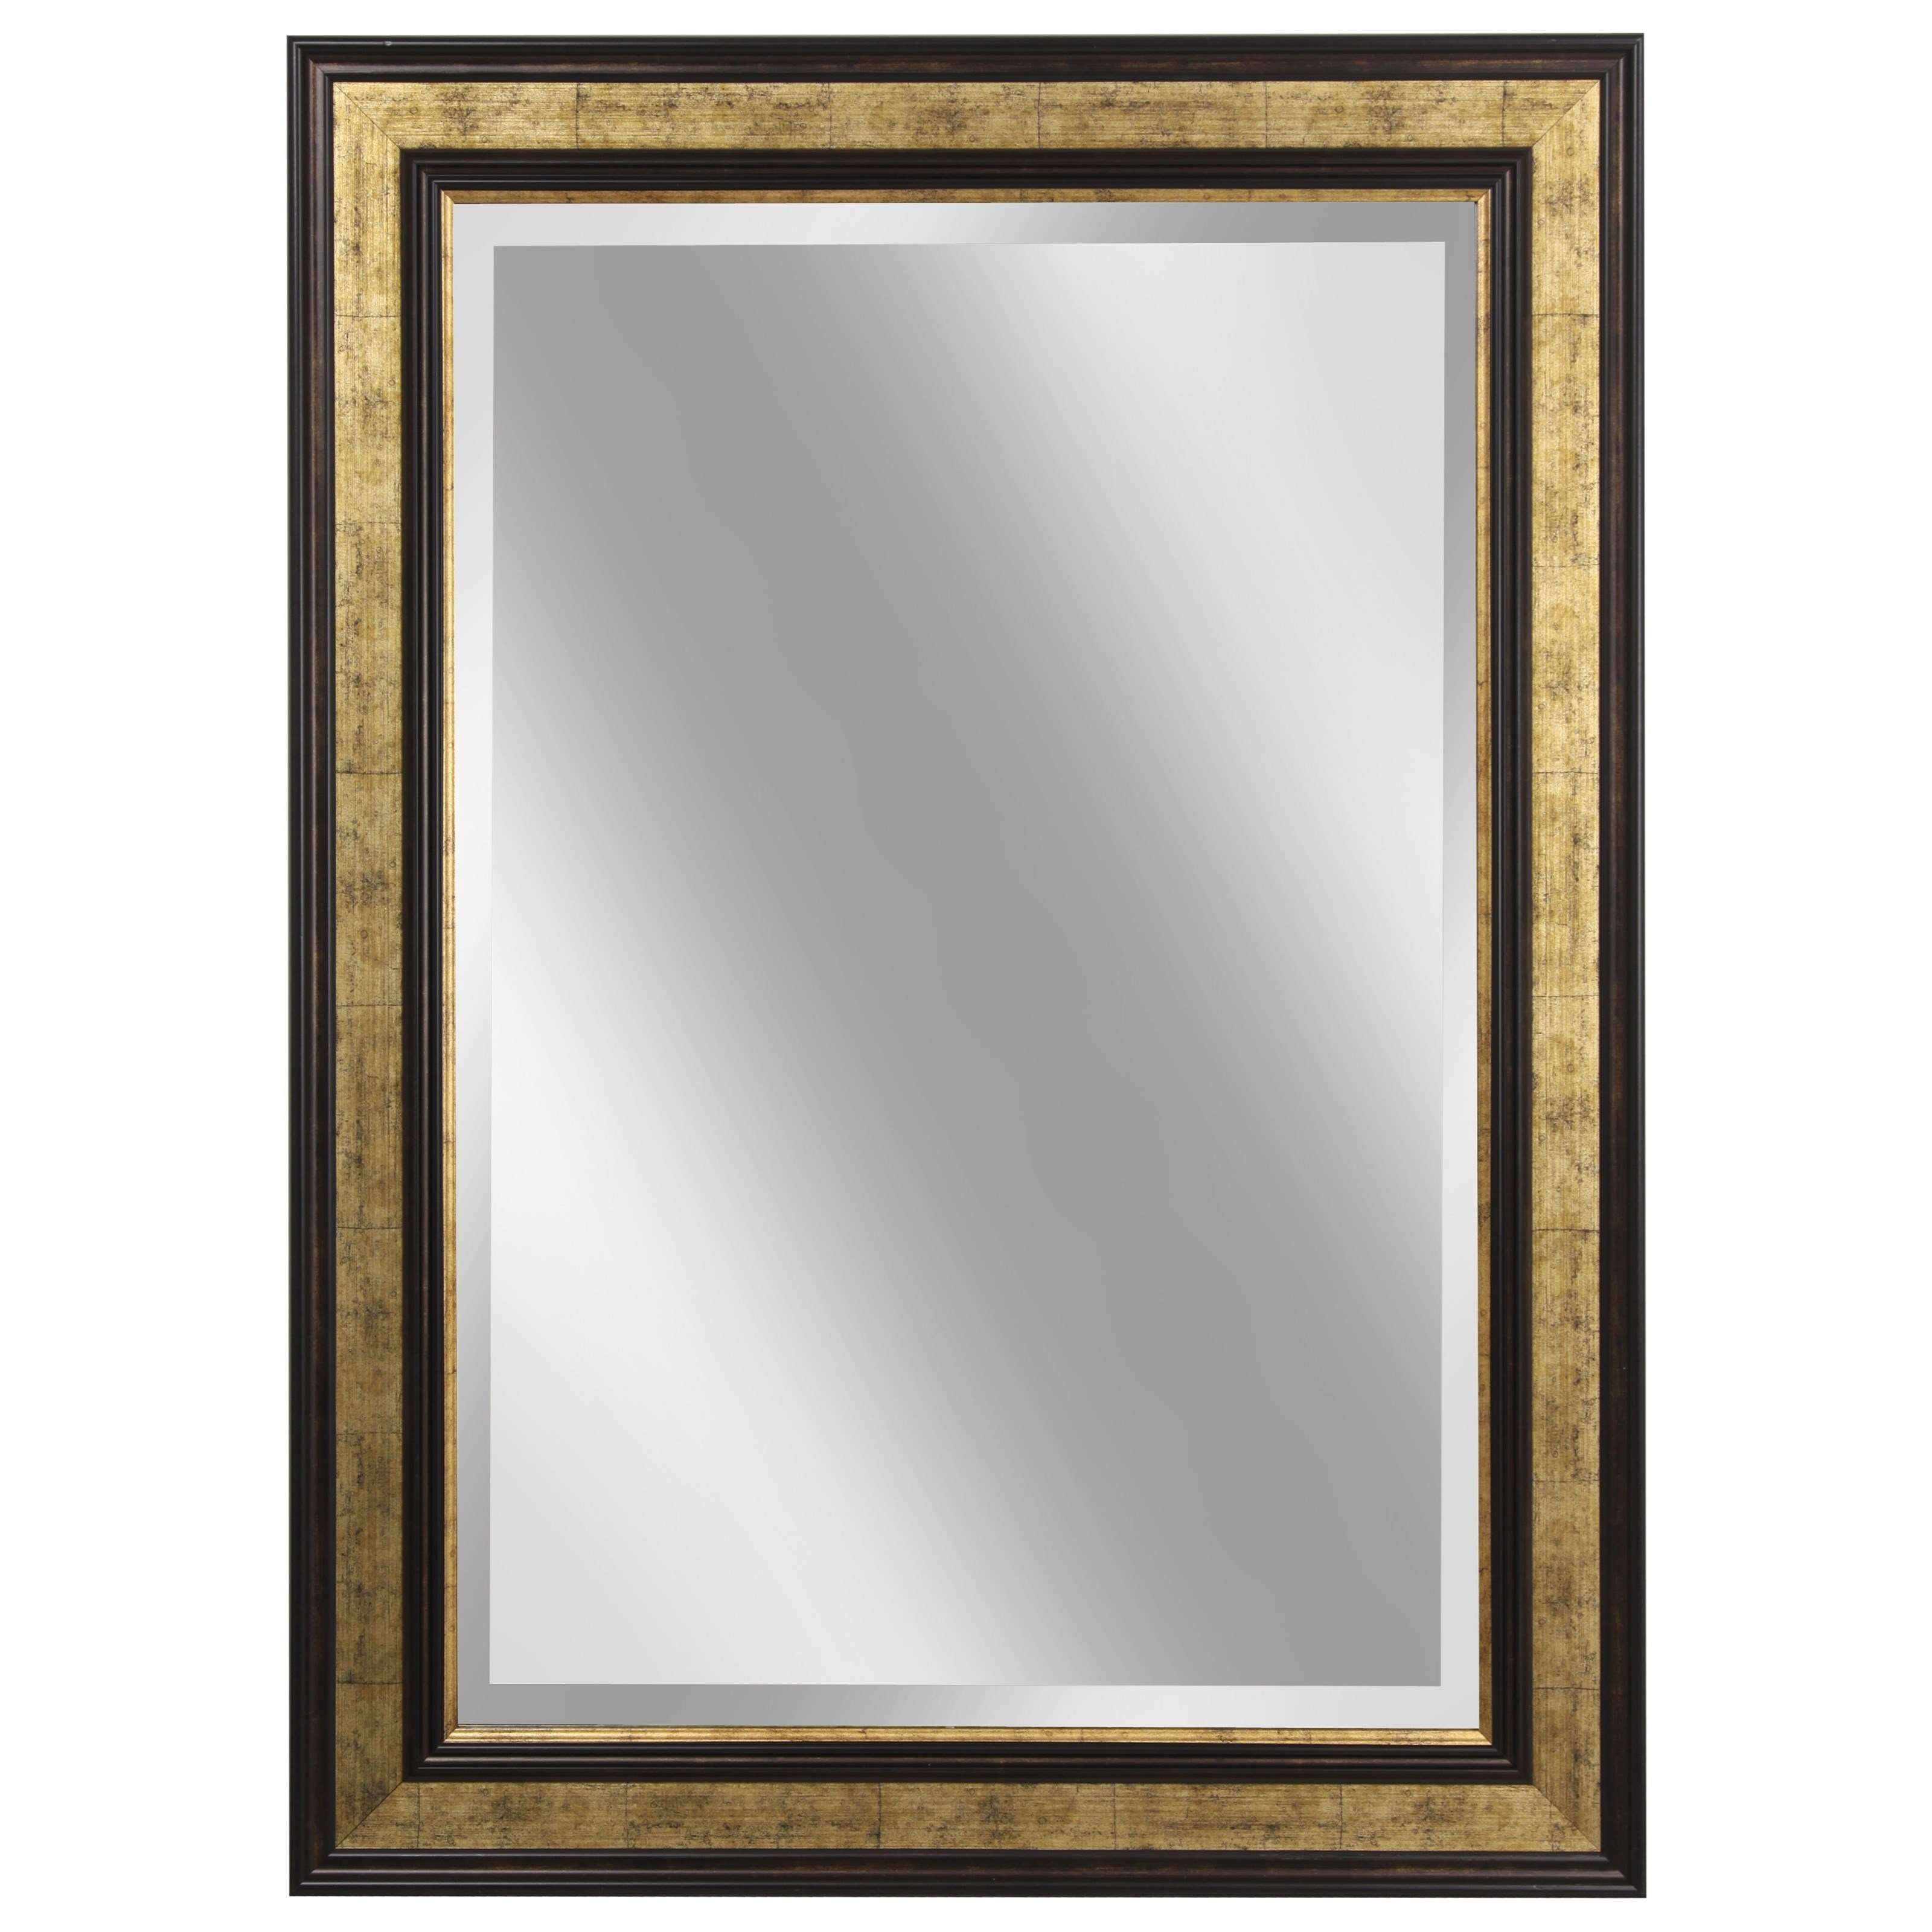 Mirrors Rectangular Wall Mirror by StyleCraft at Alison Craig Home Furnishings